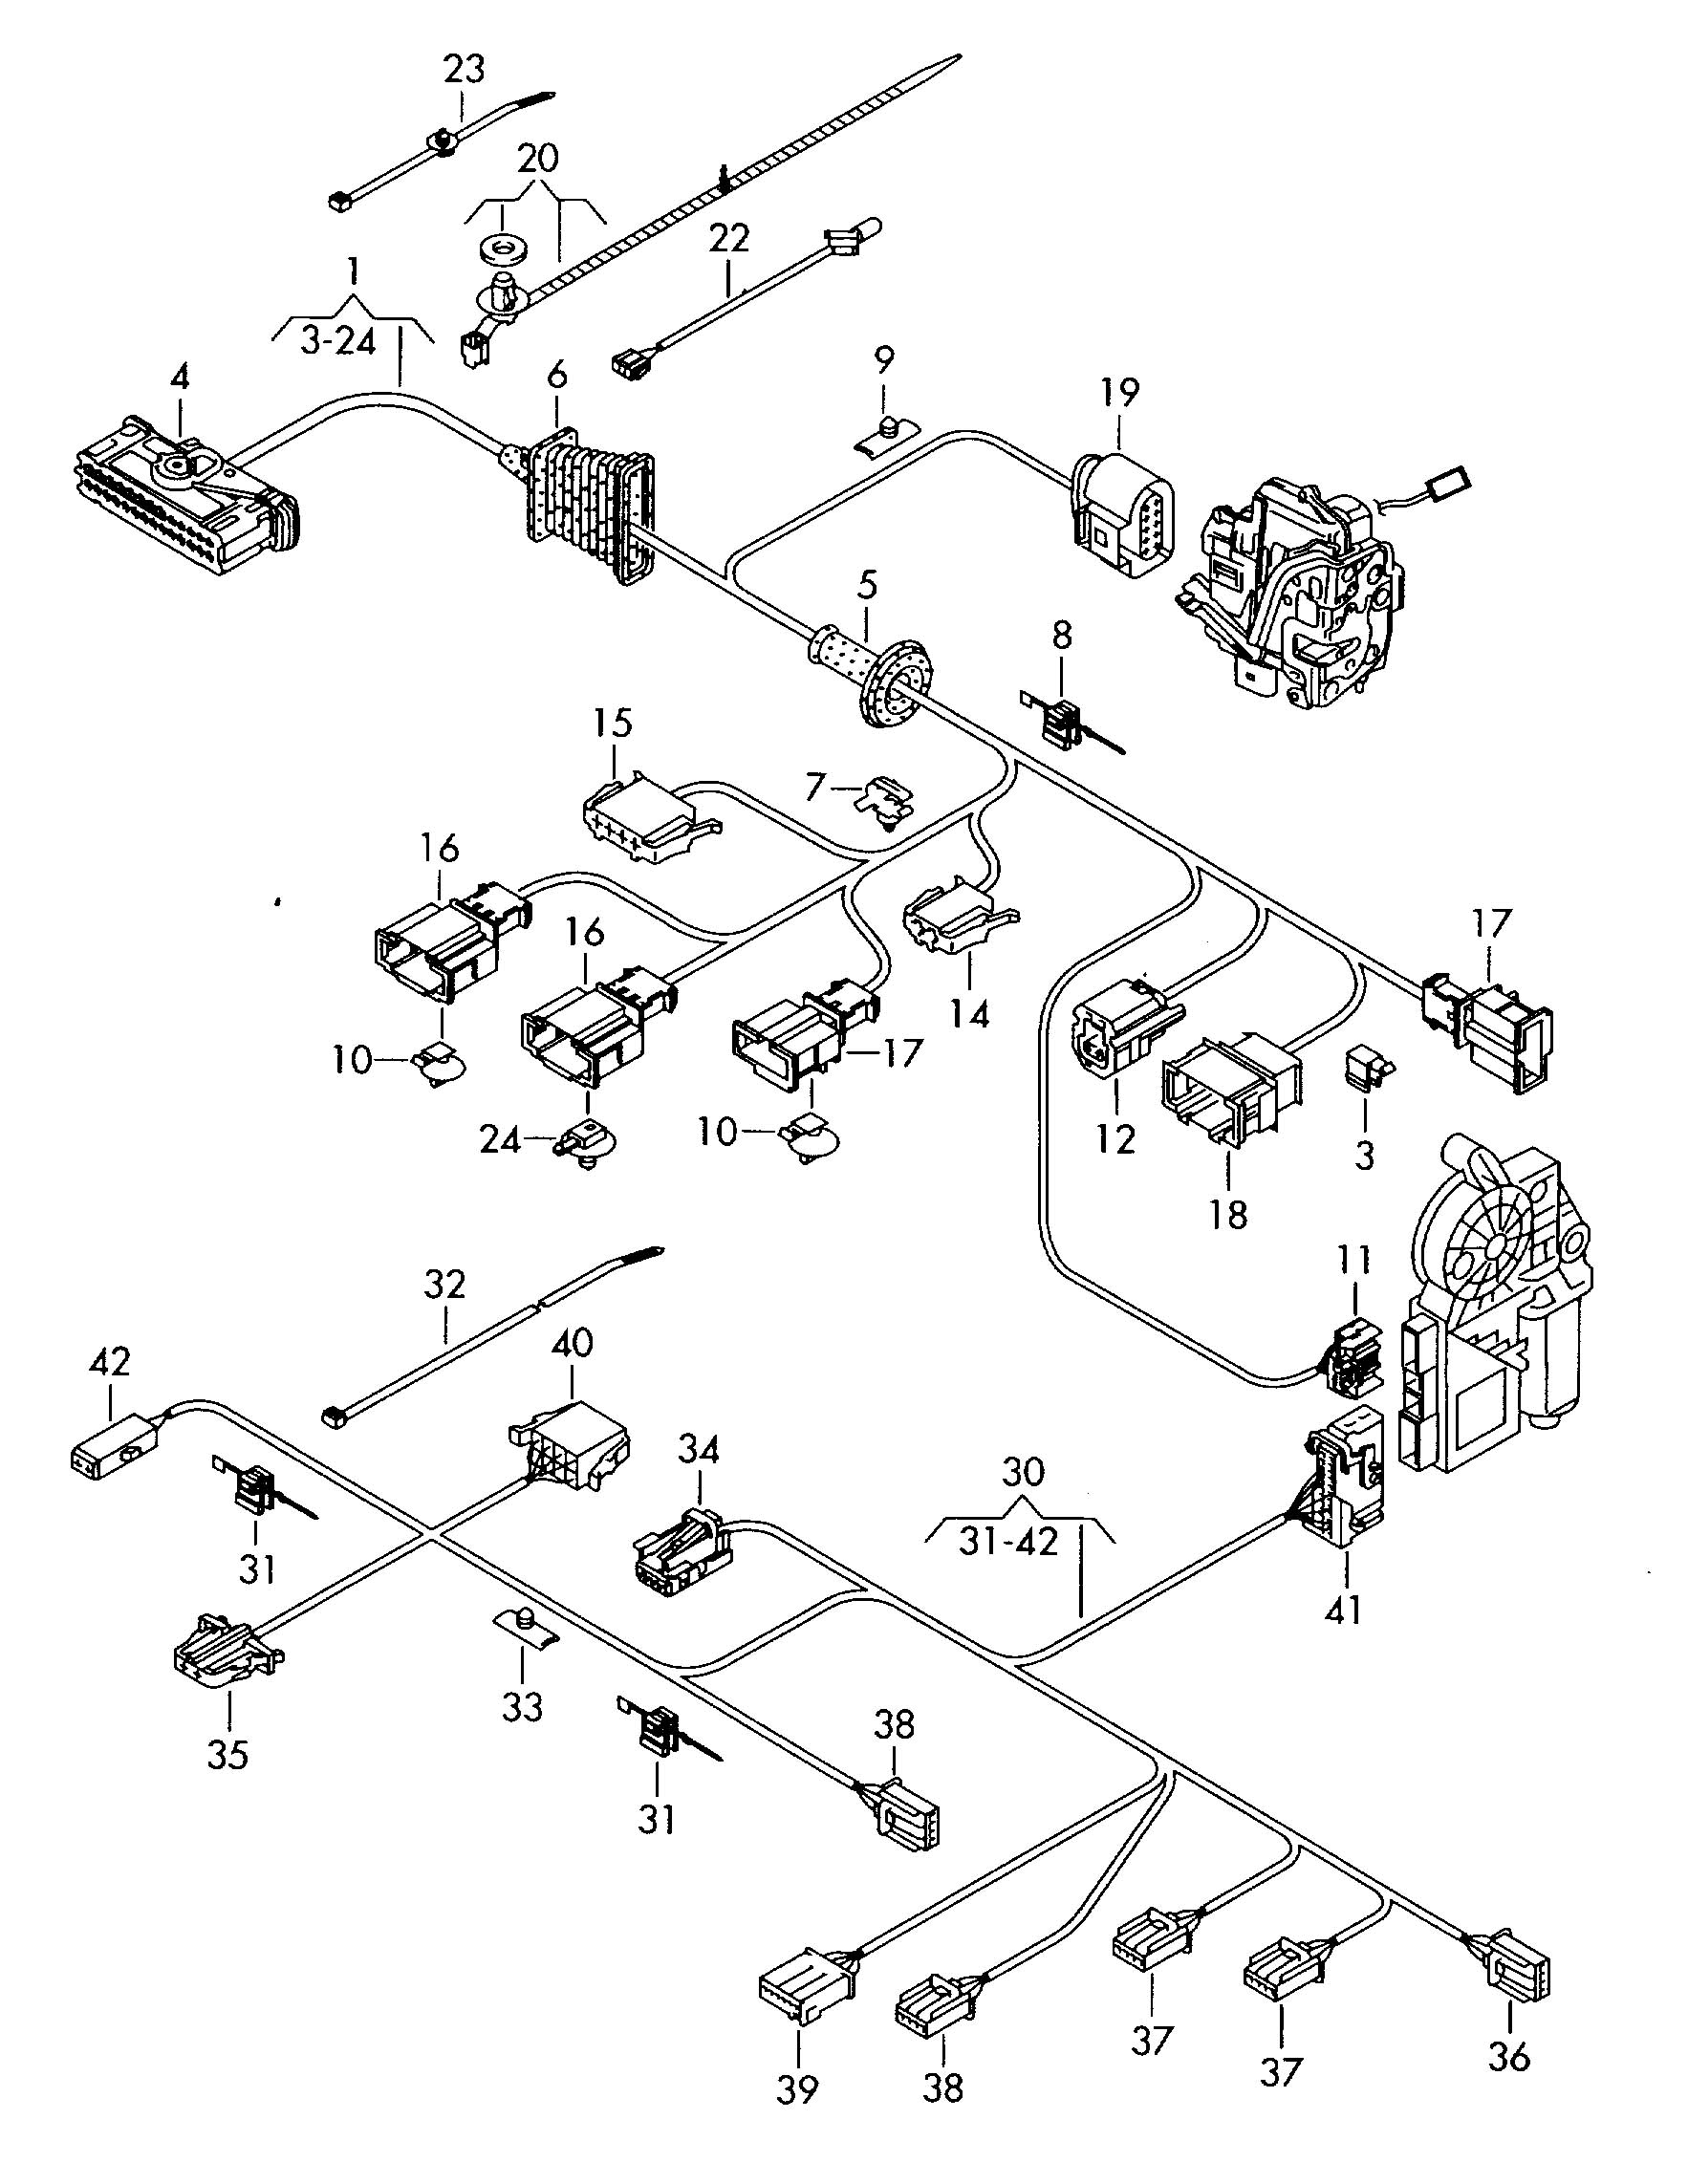 1997 honda odyssey horn circuit diagram additionally dodge journey blend door location as well 380976449703550166 as